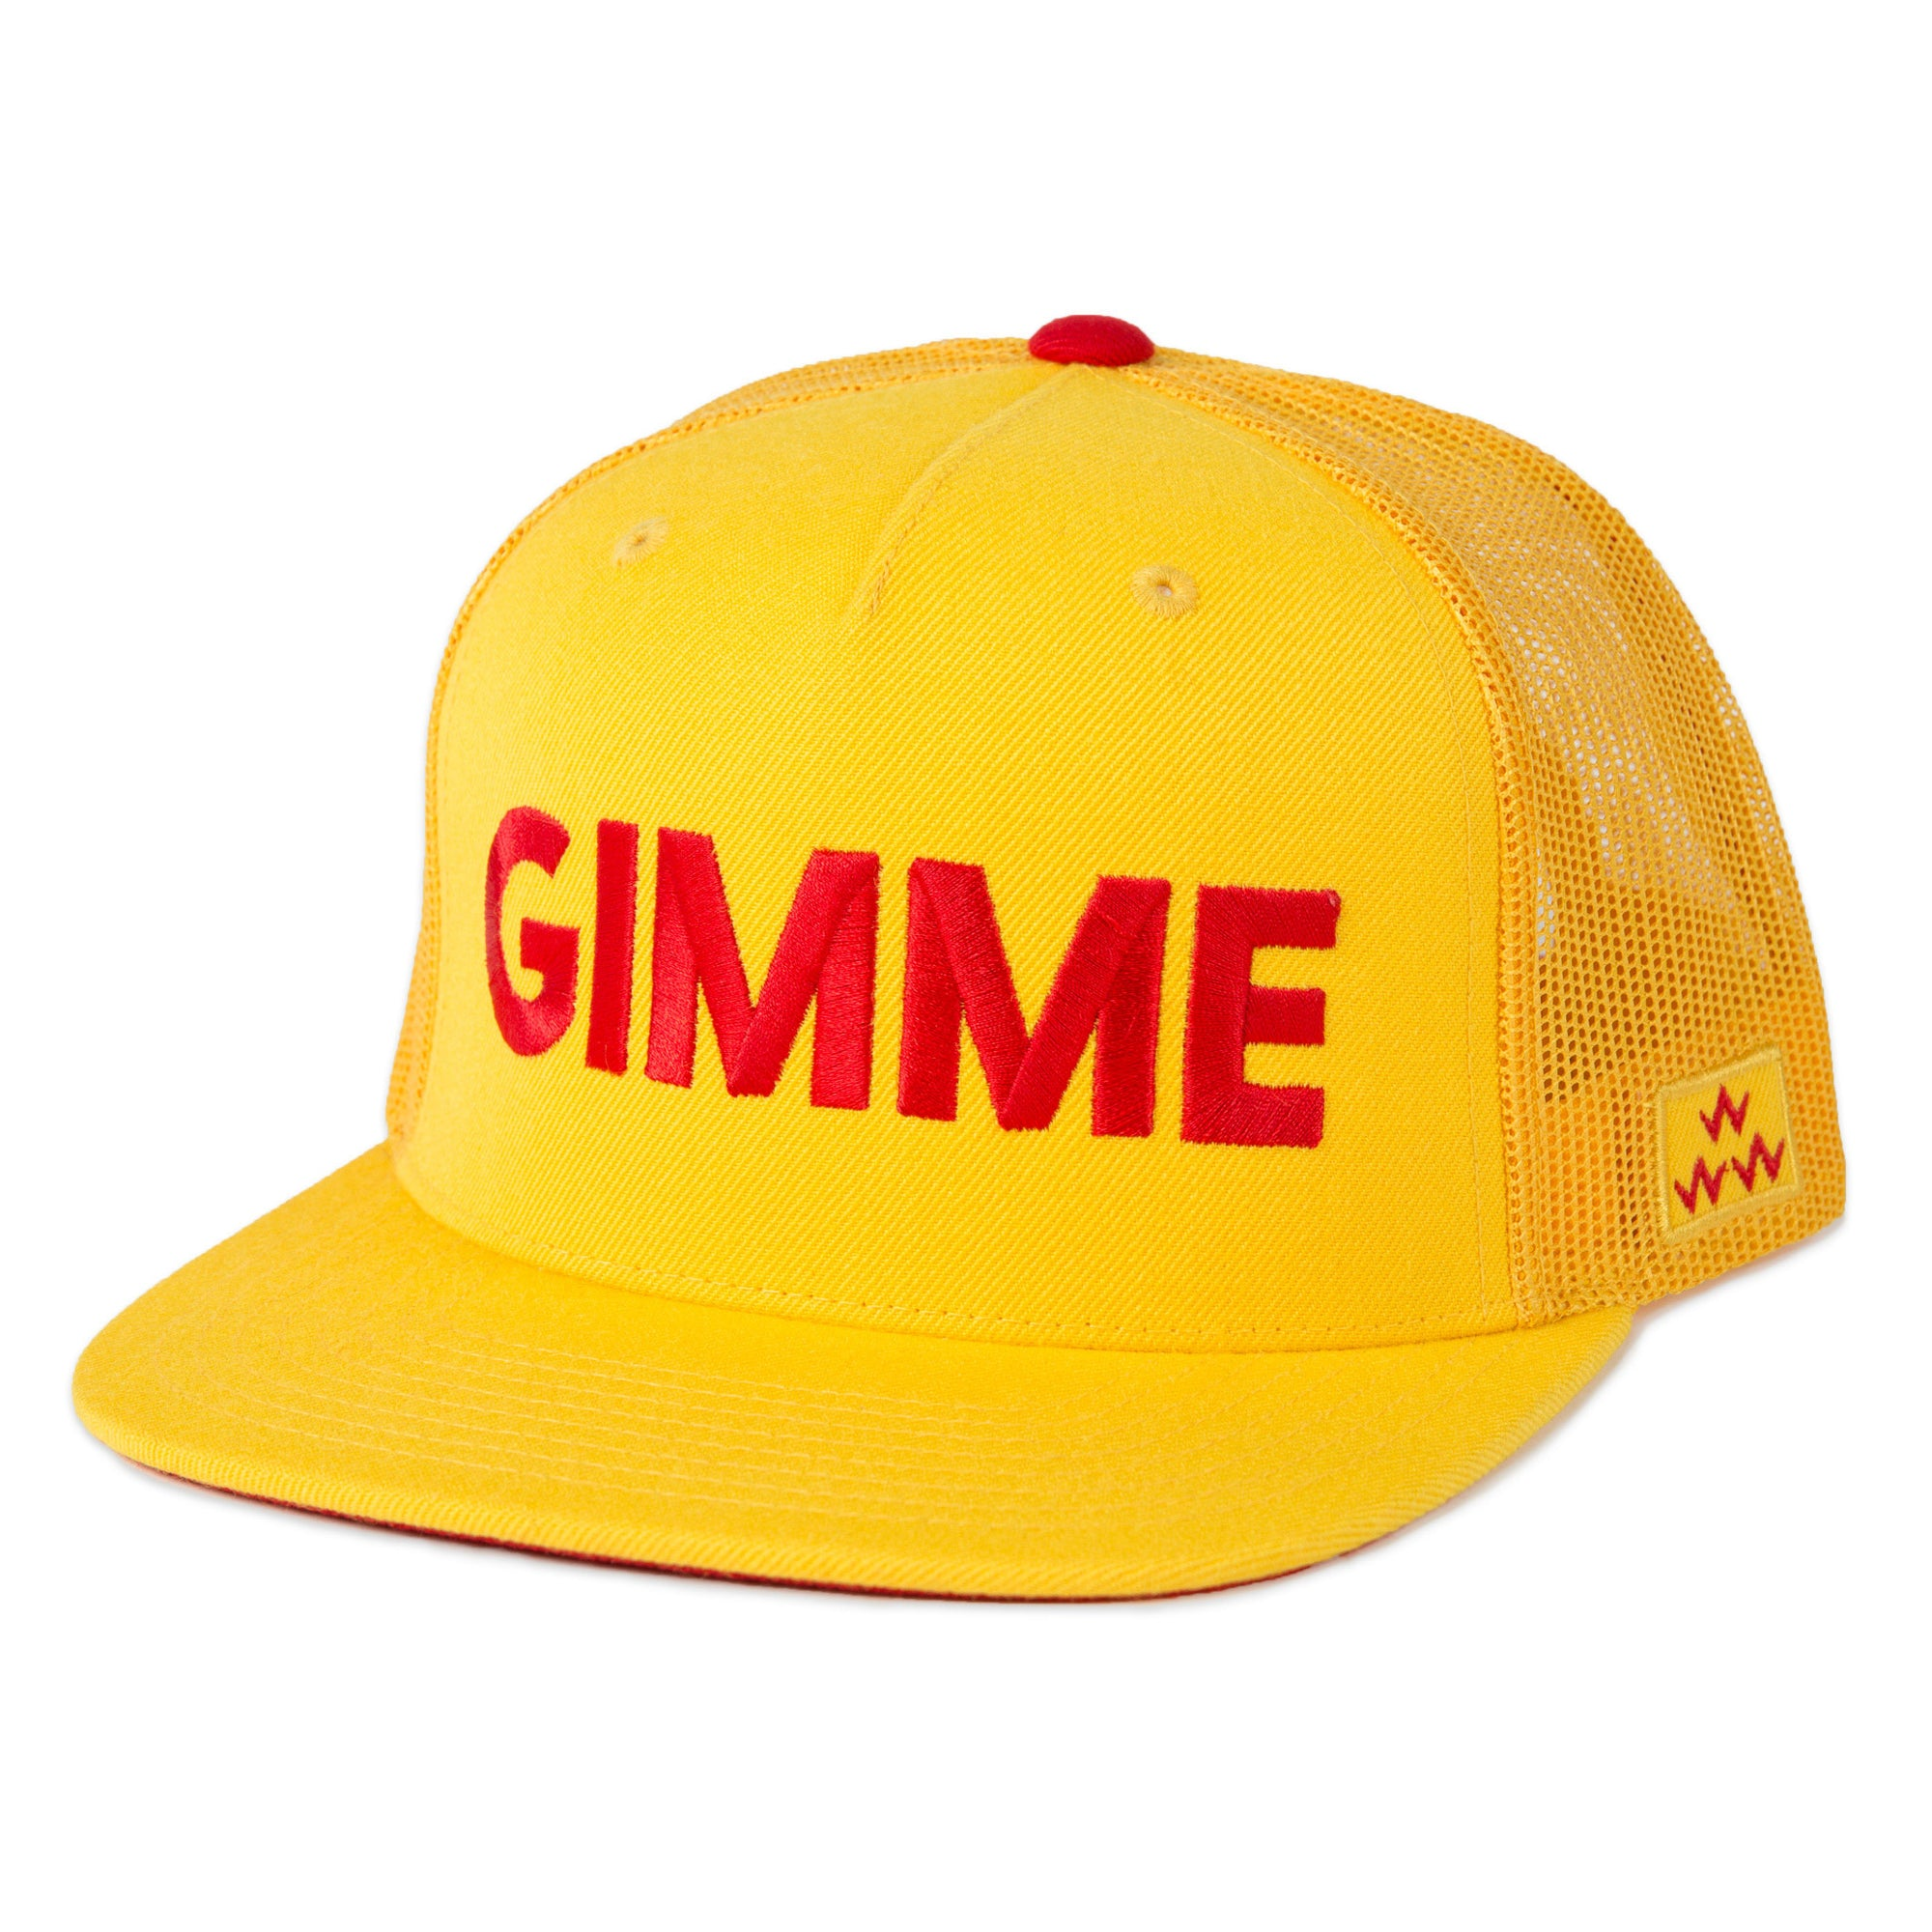 birds-of-condor-yellow-golf-gimme-trucker-hat-cap-front